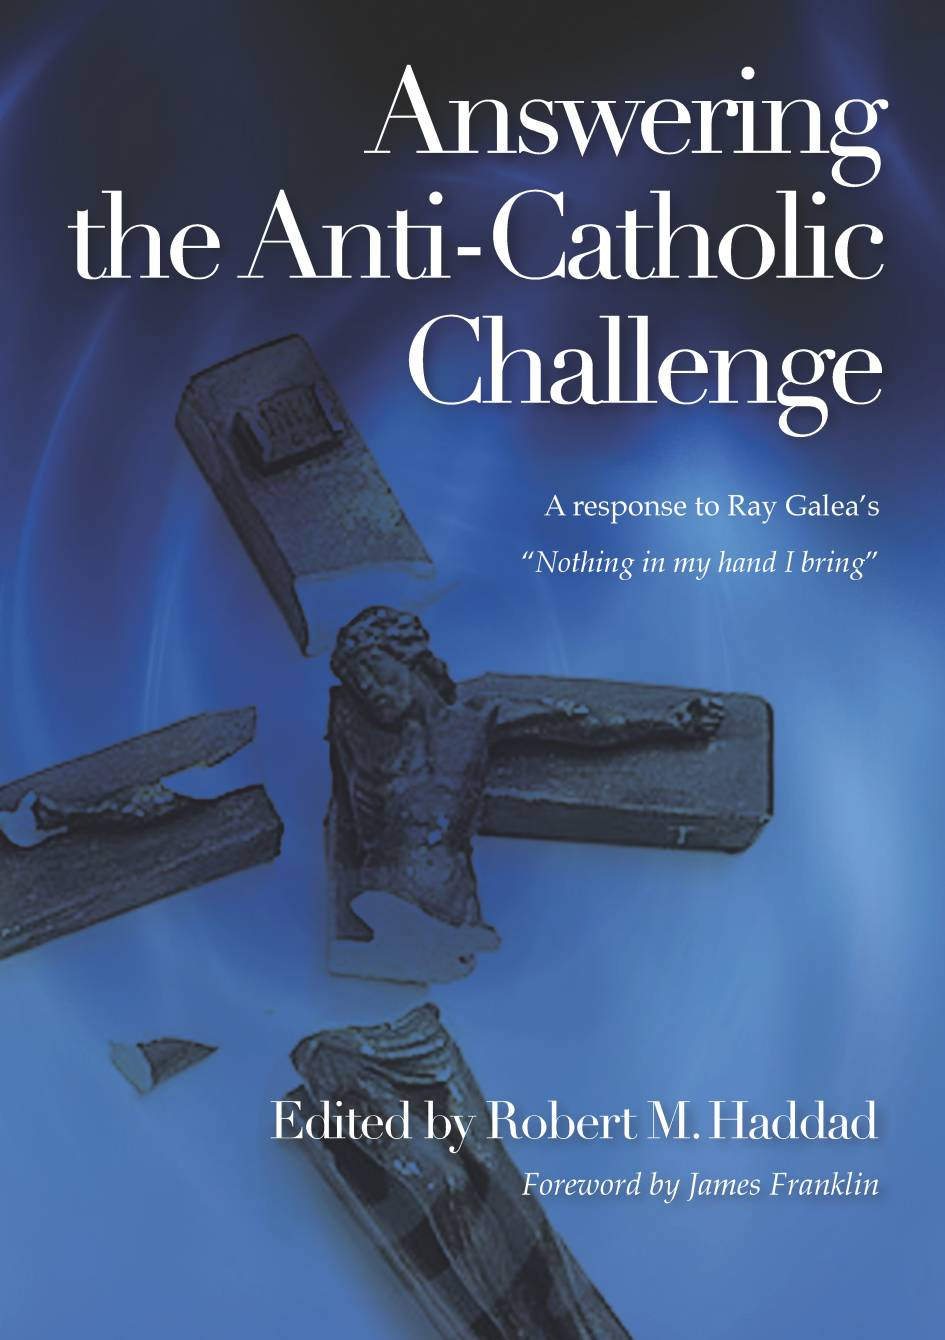 "Answering the Anti-Catholic Challenge: a Response to Ray Galea's ""Nothing in My Hand I Bring"" / Edited by Robert M. Haddad"